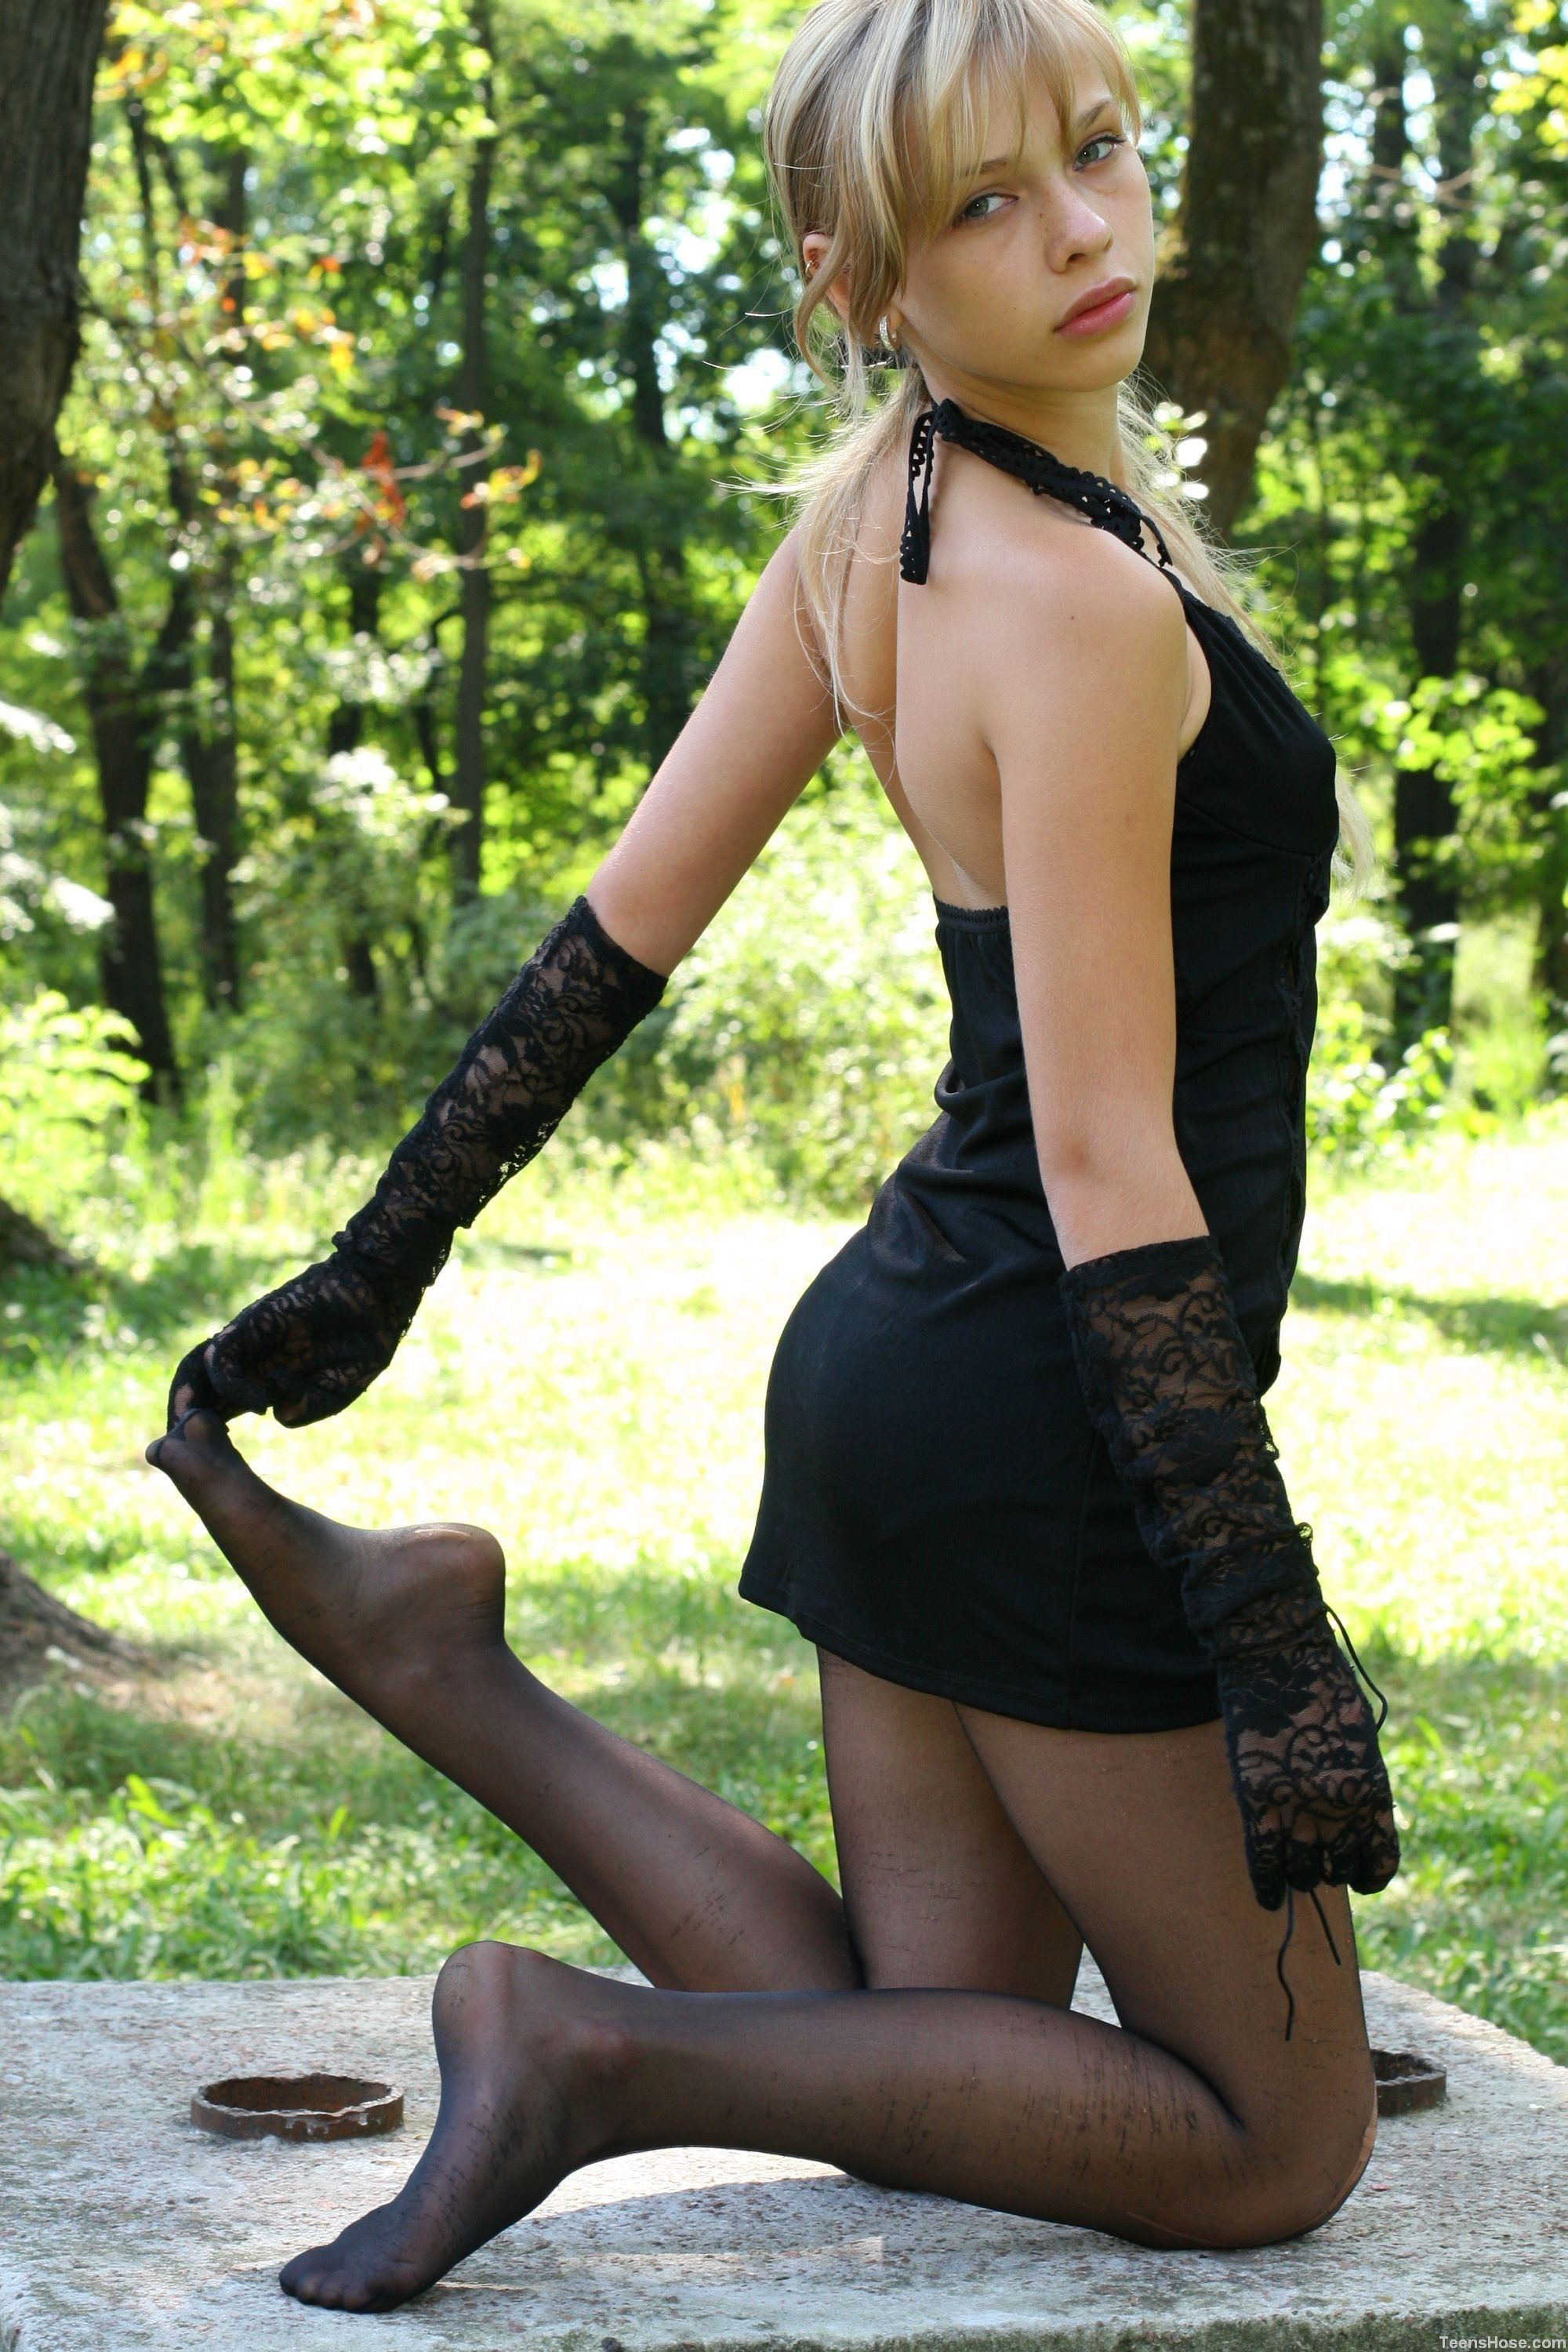 Pantyhose outdoors - More pictures here: http